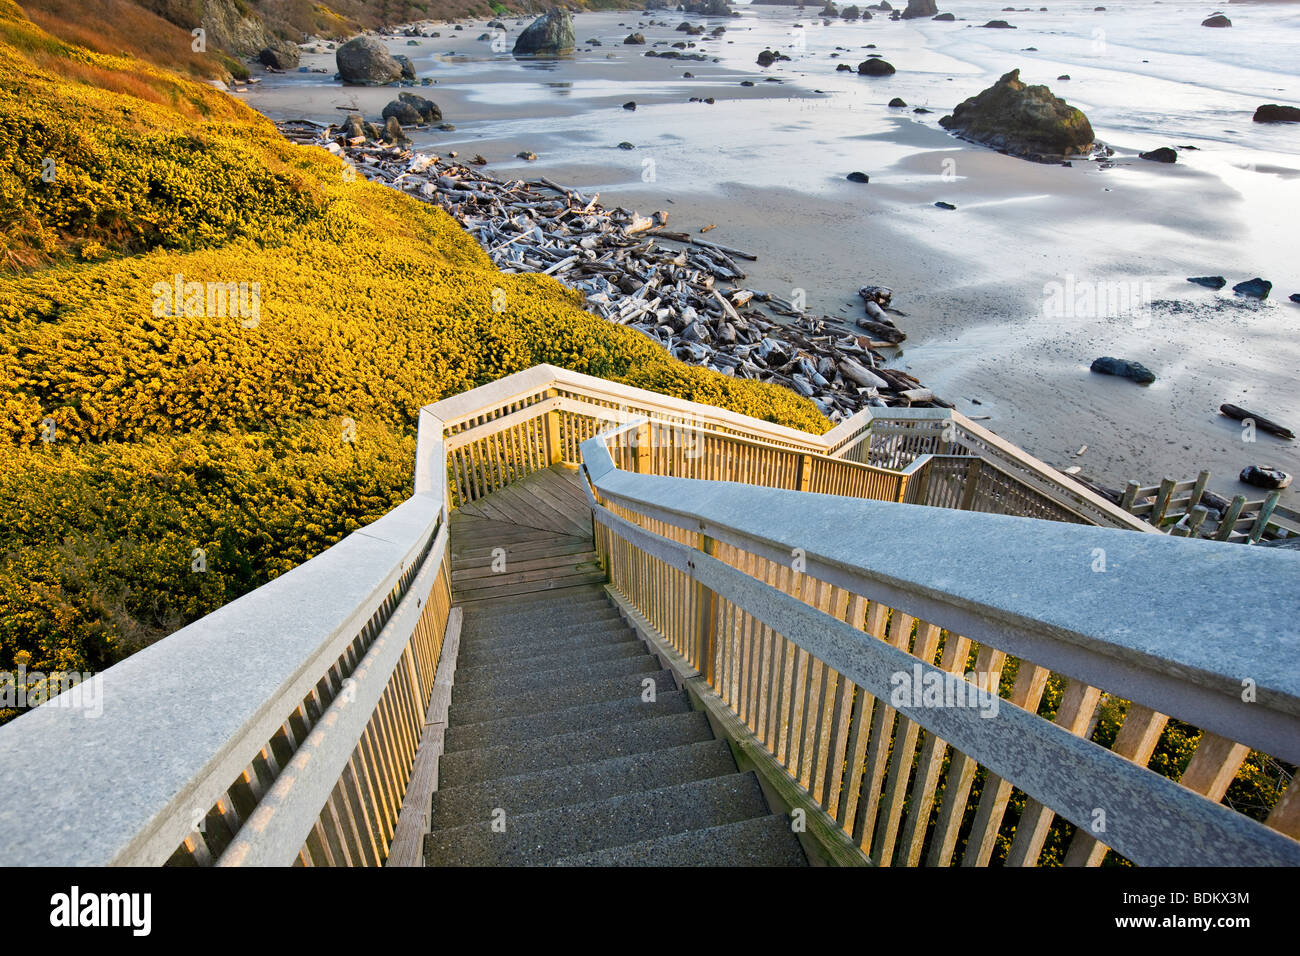 Bandon Beach with blooming gorse and stairway to beach. Oregon - Stock Image